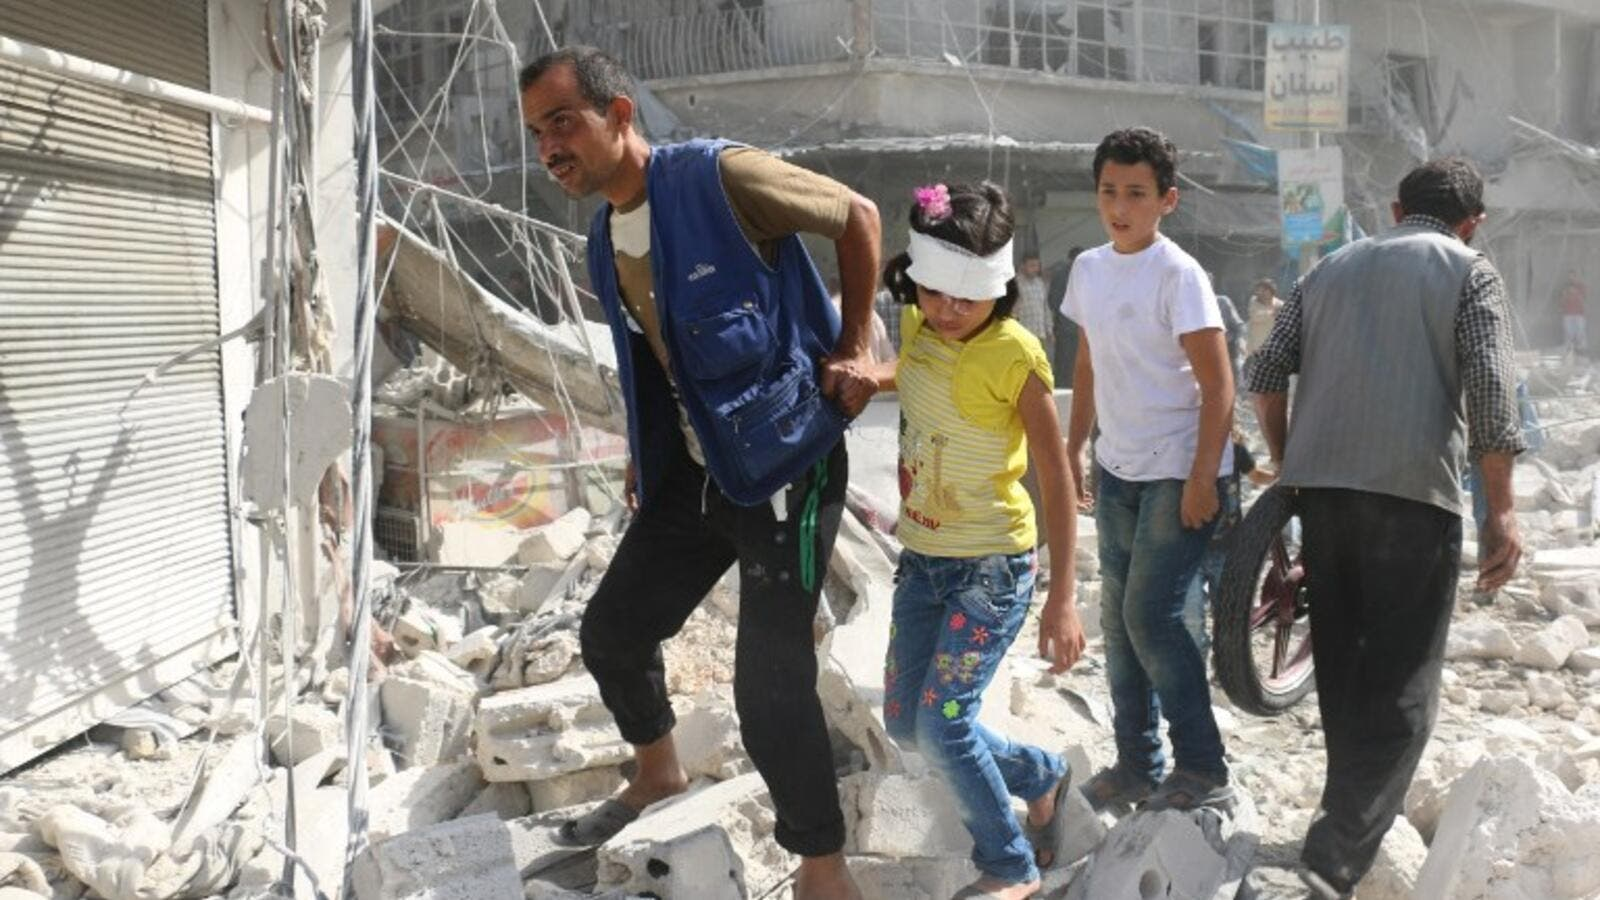 Syrians walk over rubble following air strikes on the rebel-held Fardous neighbourhood of the northern embattled Syrian city of Aleppo on October 12, 2016. (AFP/Ameer Alhalbi)